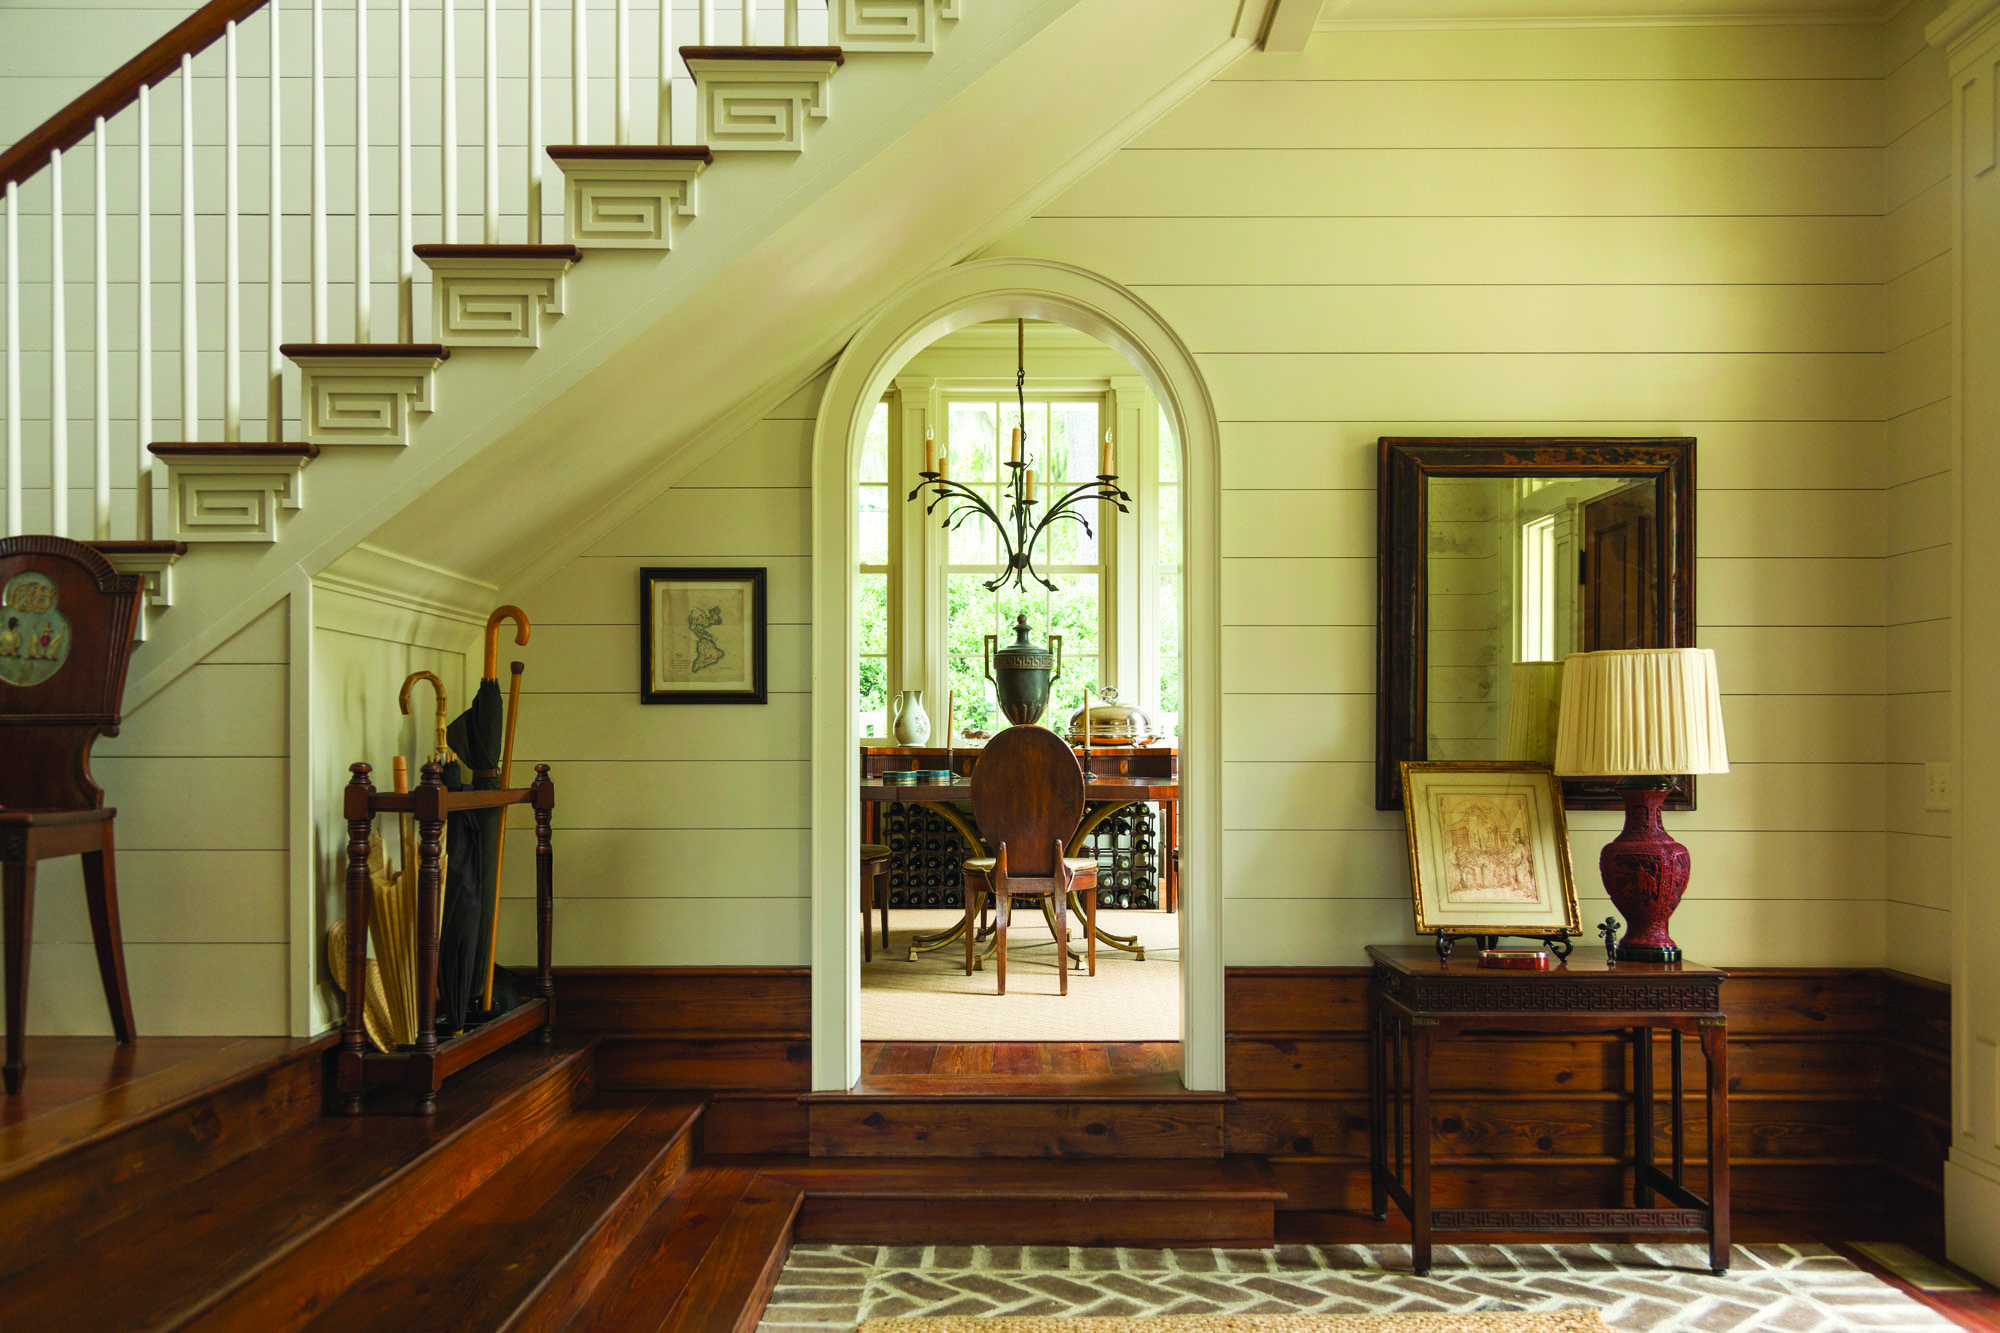 Rooms are filled with flourishes of Greek Revival style.